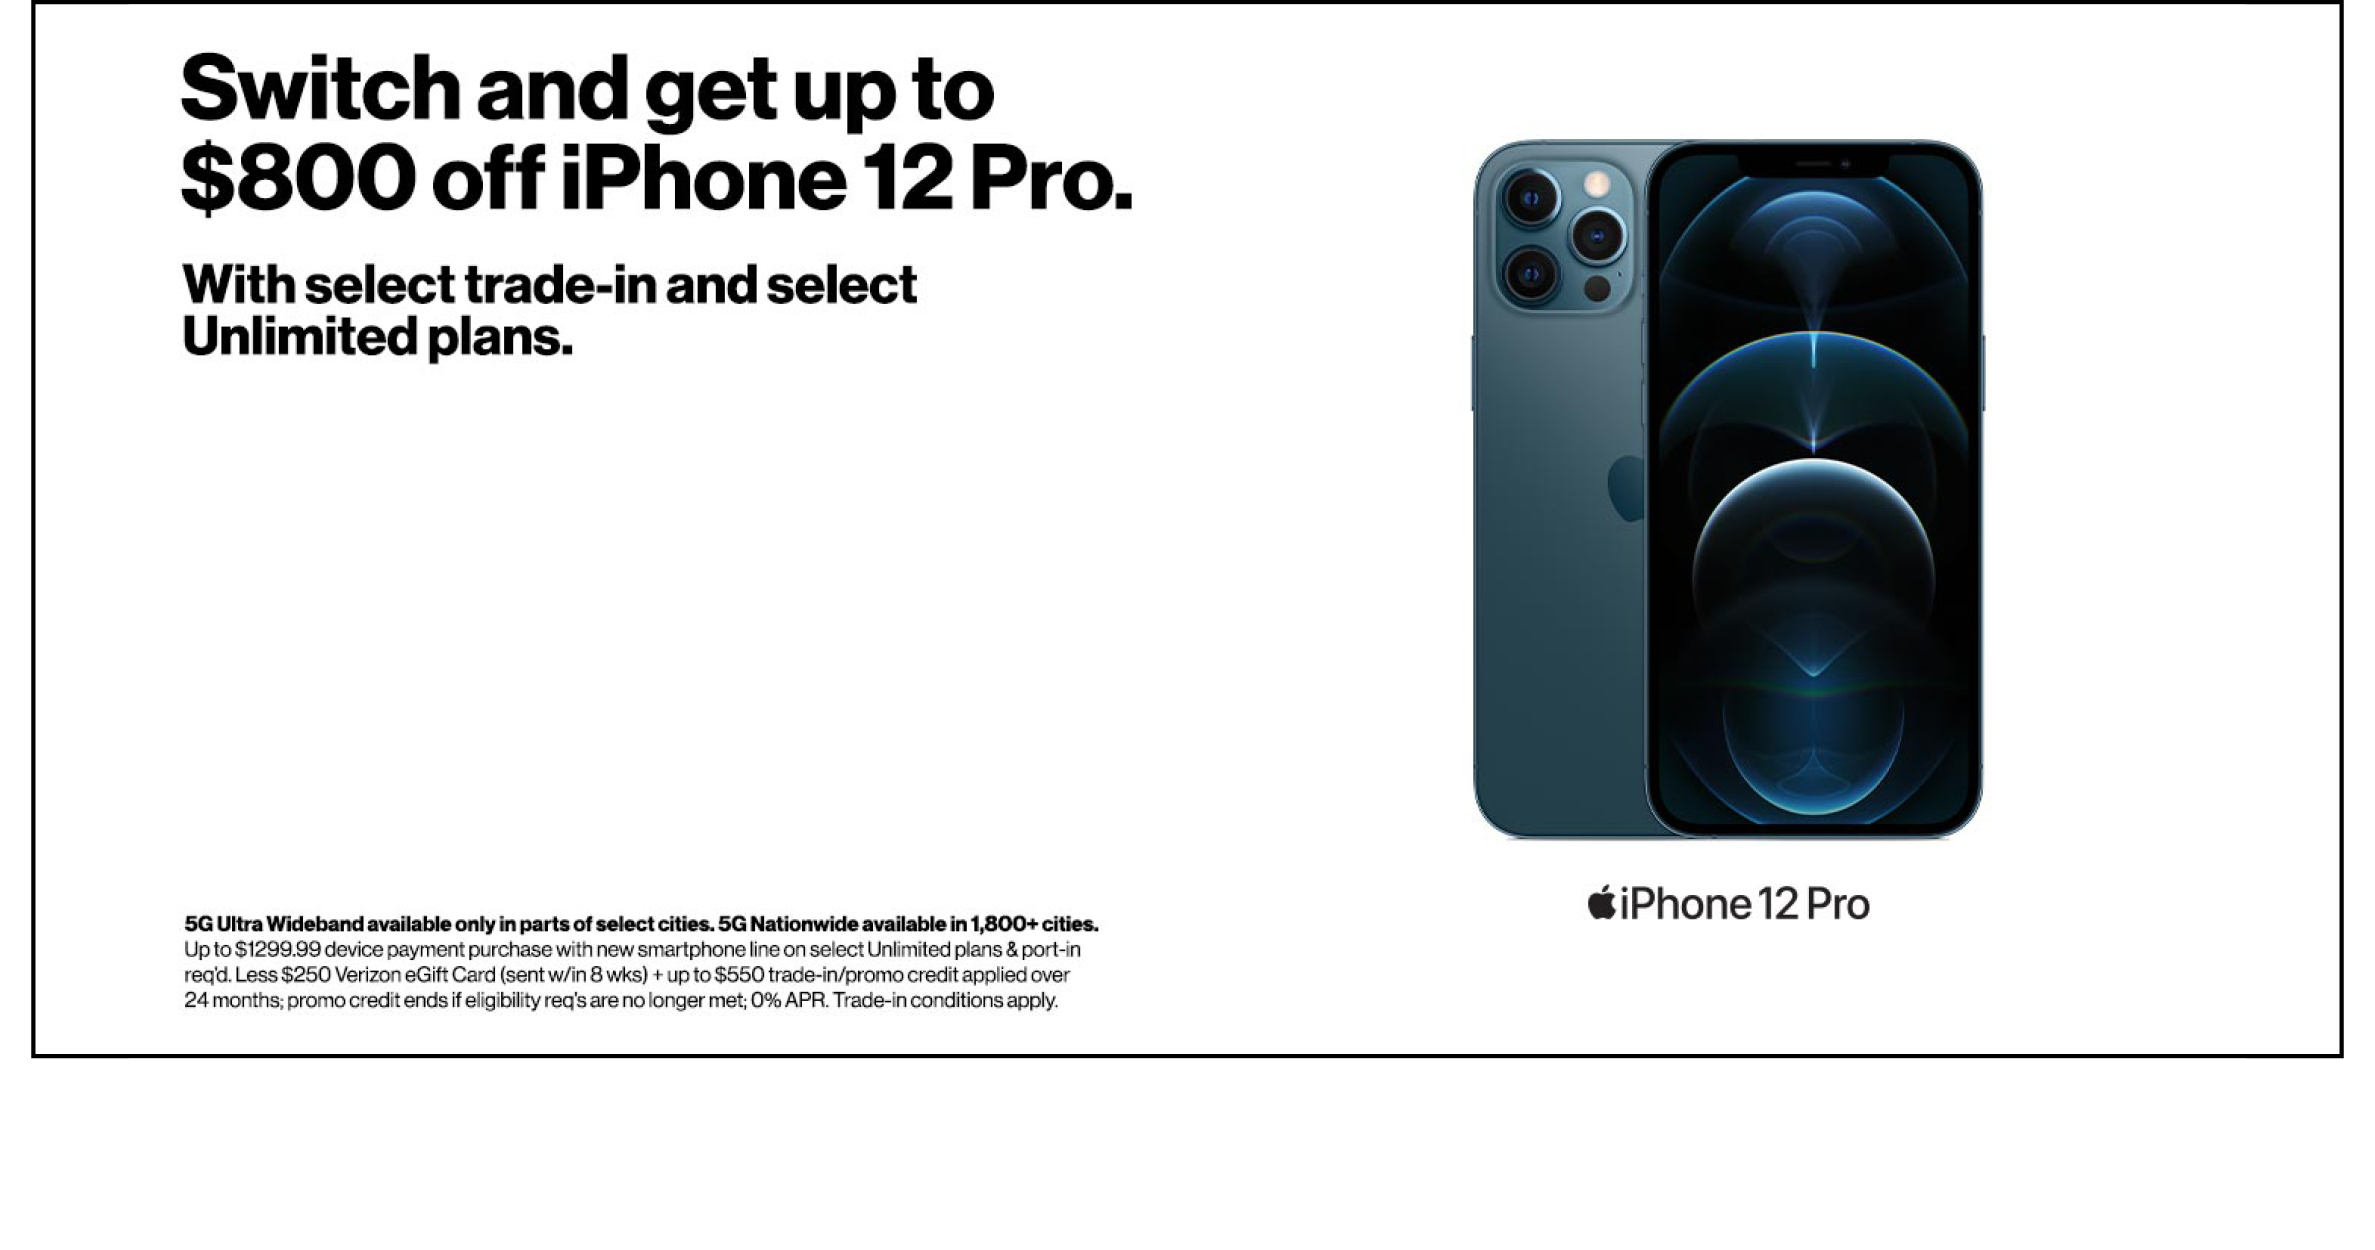 Switch to Verizon and get up to $800 off iPhone 12 Pro.